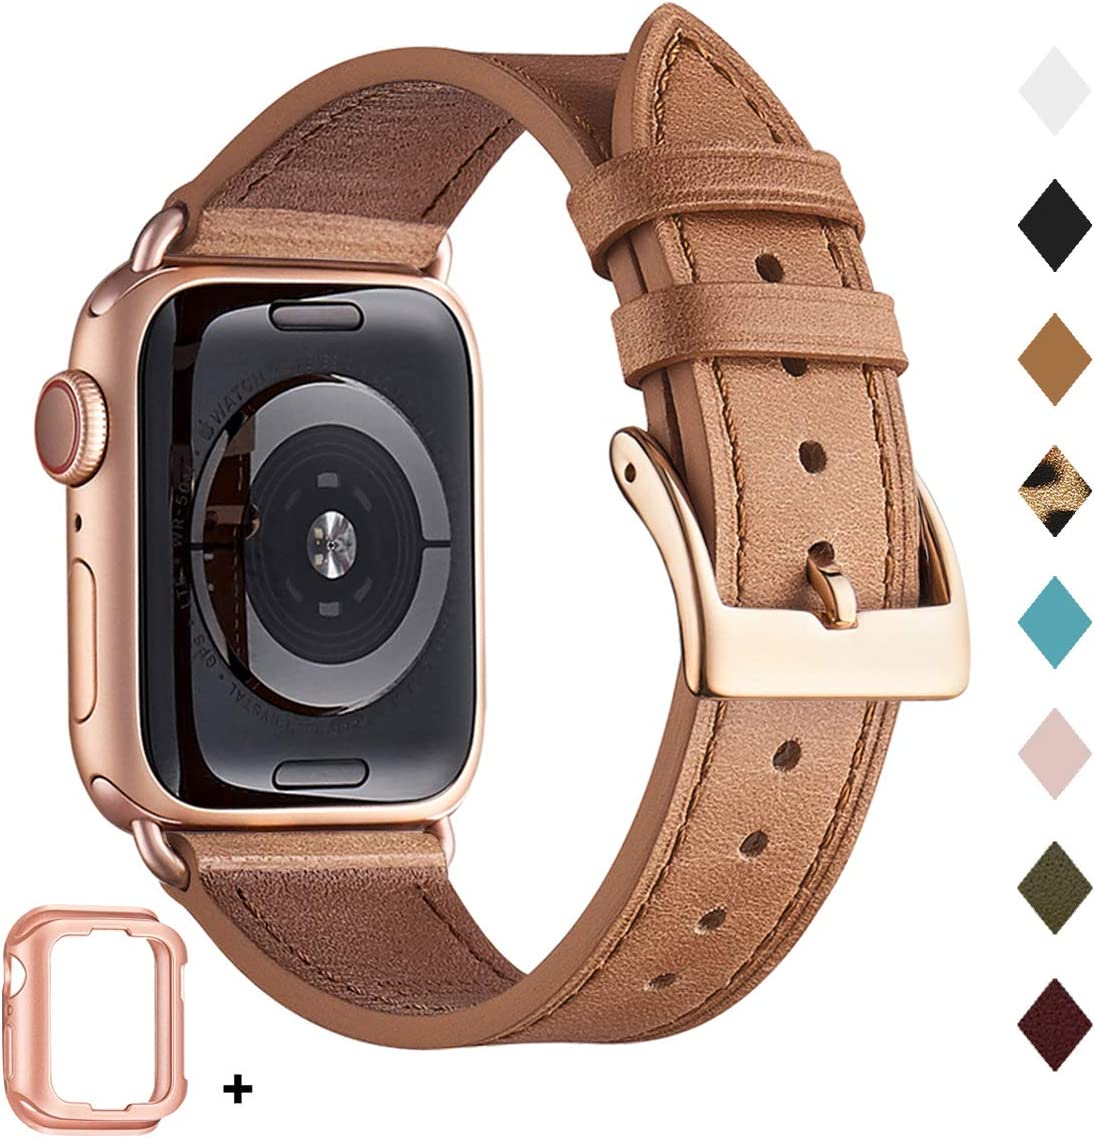 Bestig Band Compatible for Apple Watch 38mm 40mm 42mm 44mm, Genuine Leather Replacement Strap for iWatch Series 6 SE 5 4 3 2 1, Sports & Edition (Saddle Brown Band+Rose Gold Adapter, 42mm 44mm)